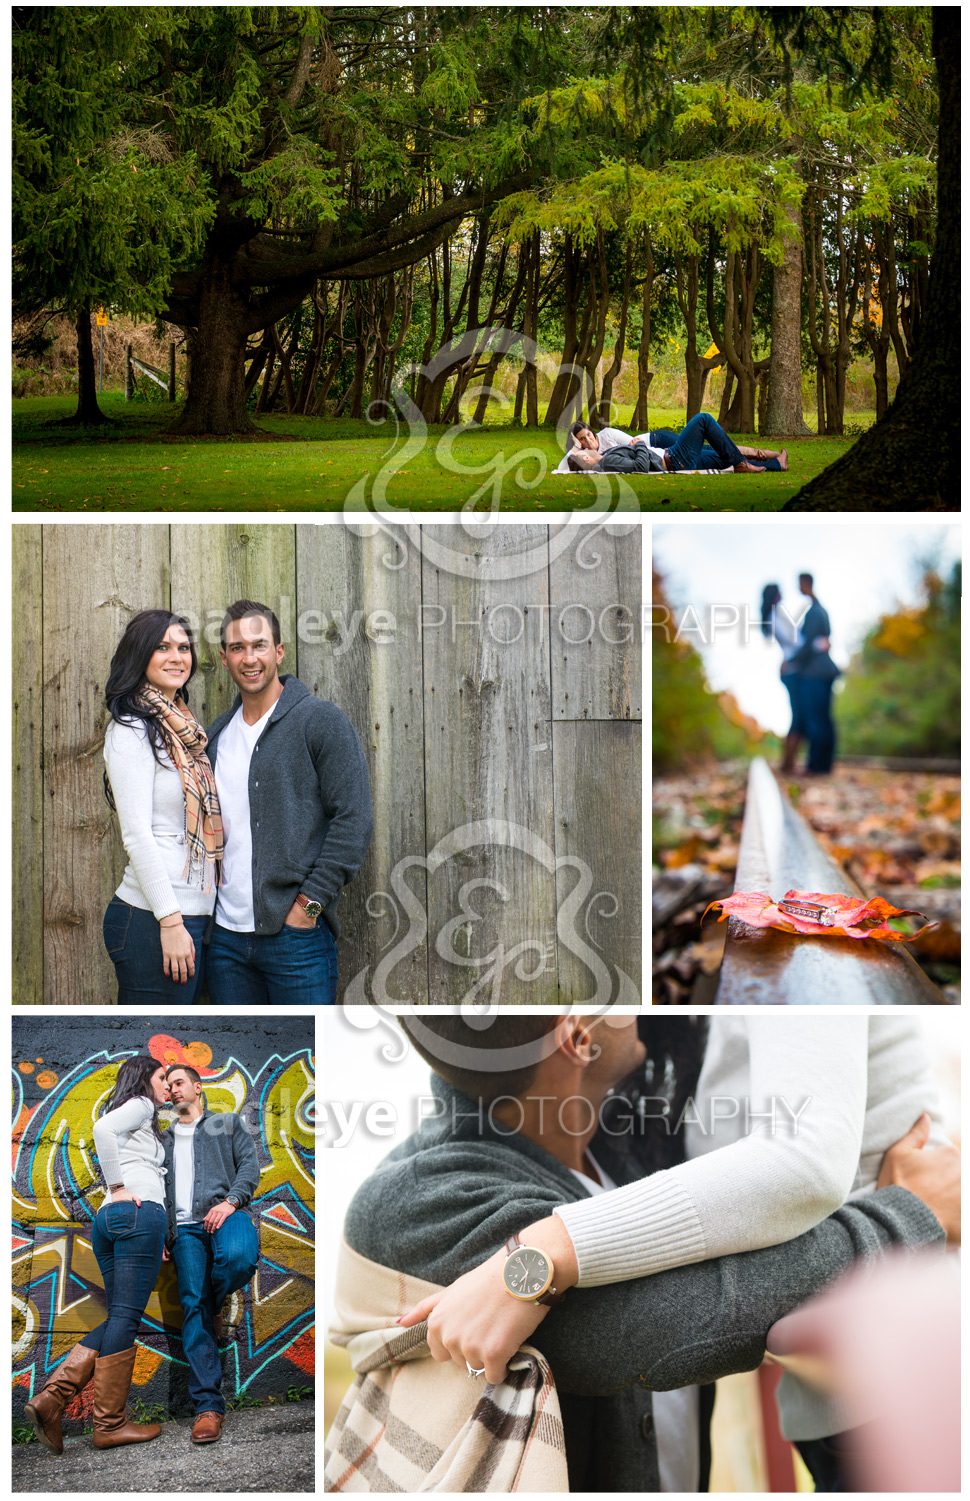 Fall is in the air with Shanel and Patrick's engagement shoot photos.